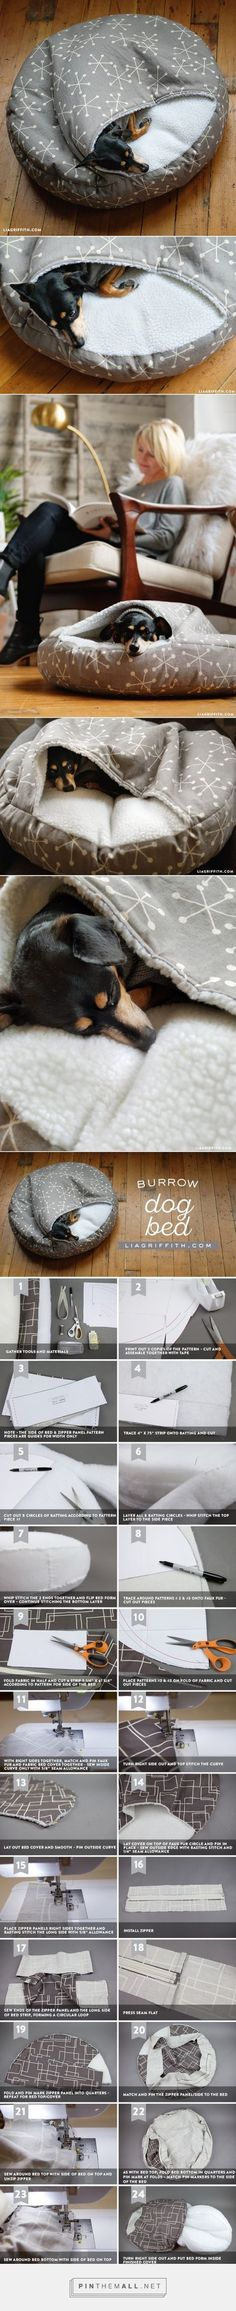 DIY Pet Bed - Pawsome! DIYPets I PetBed I HomeMadePetBed I DIY Pet Projects - Tap the pin for the most adorable pawtastic fur baby apparel! You'll love the dog clothes and cat clothes!